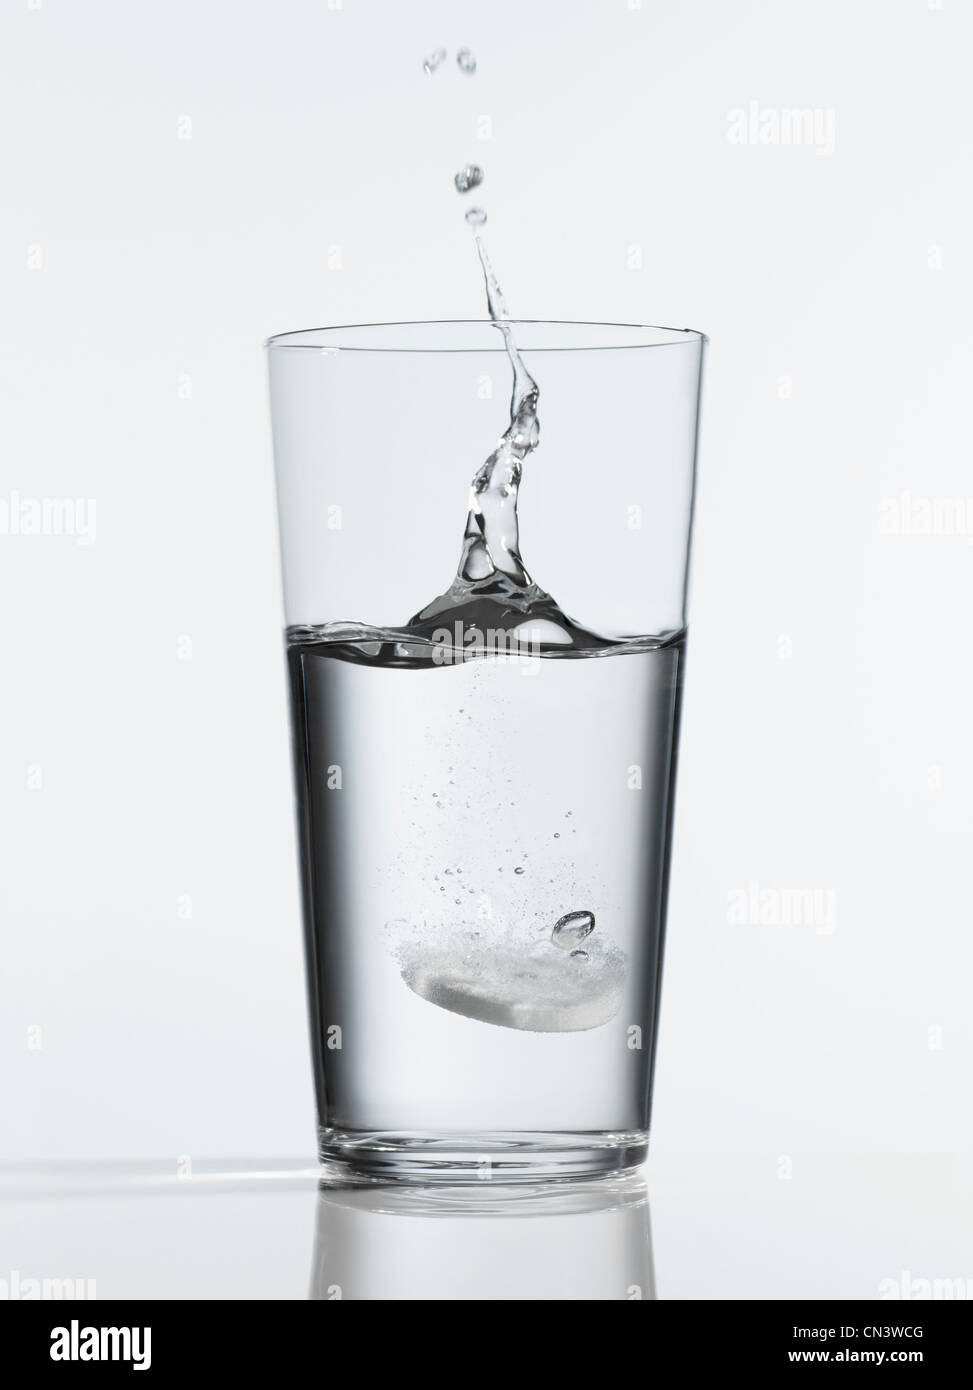 Tablet splashing into glass of water - Stock Image